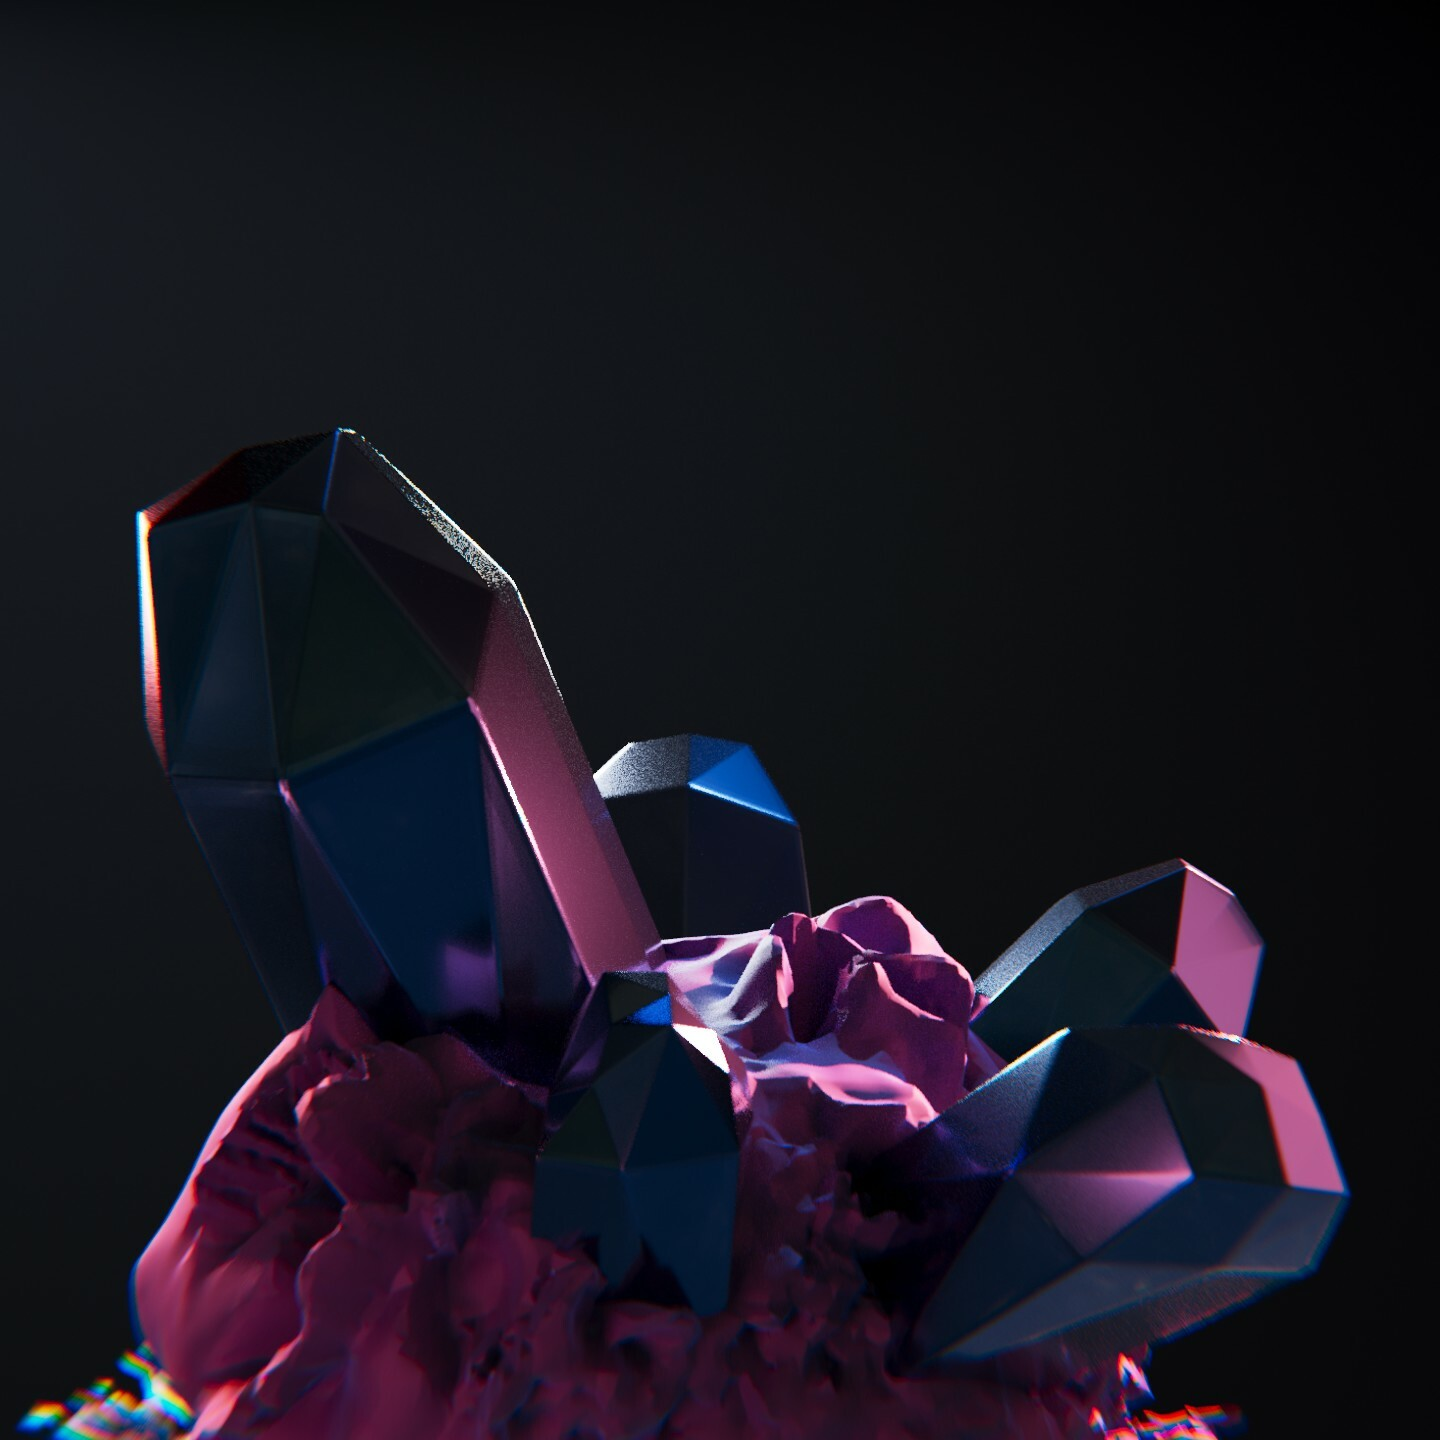 SculptJanuary2020 - Day 14 - Crystalline